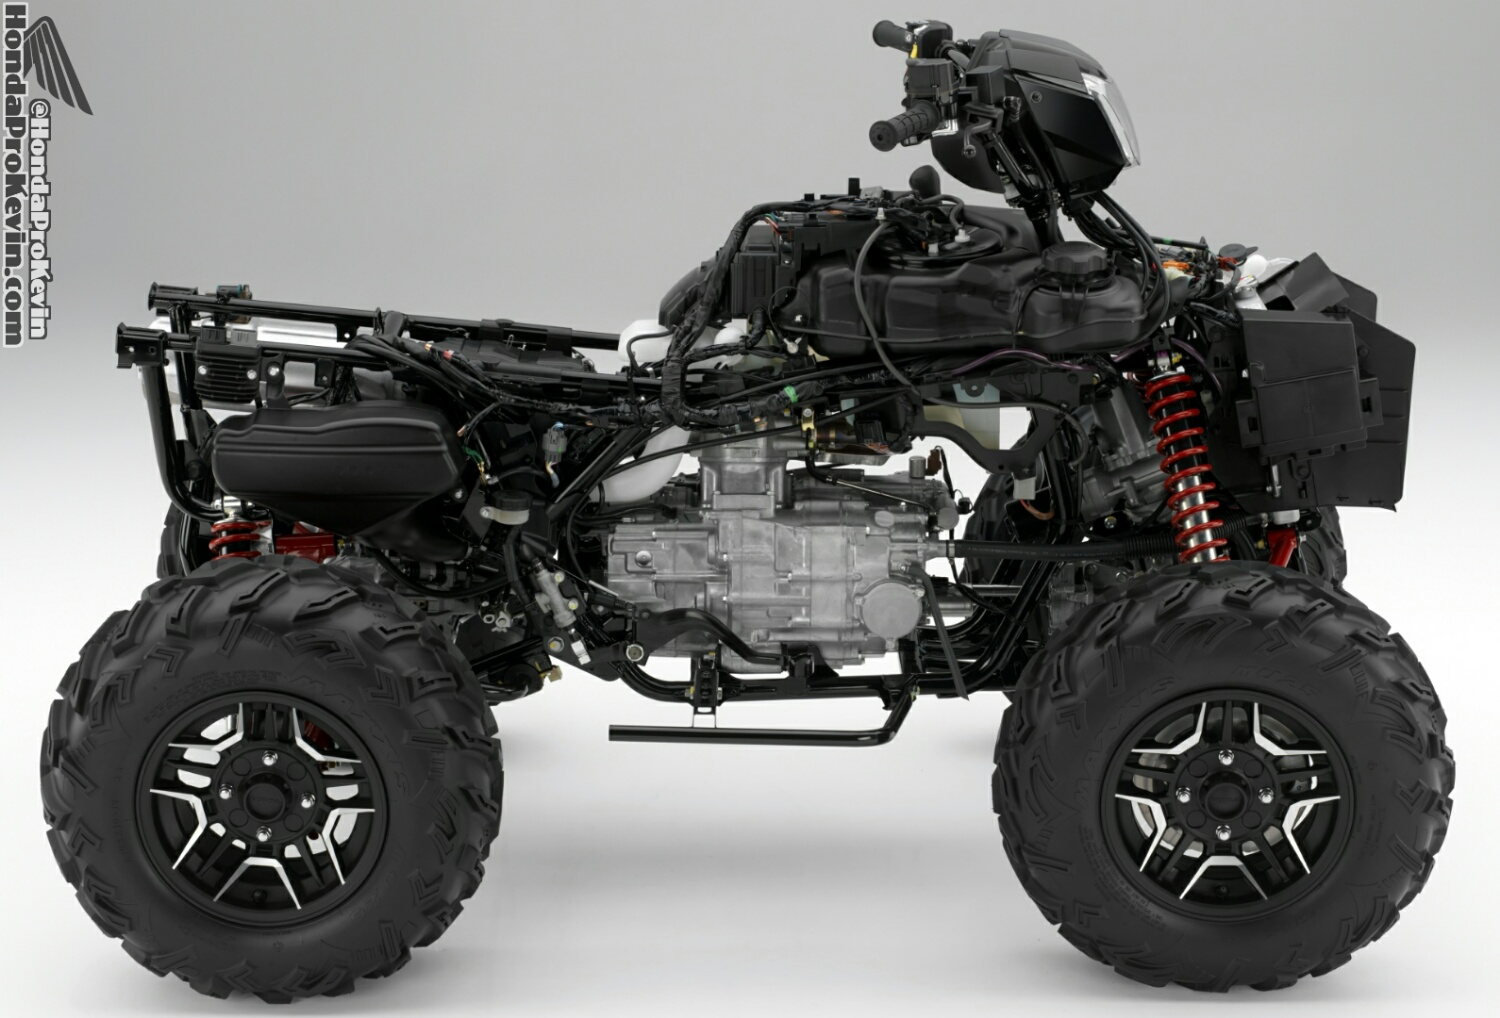 2018 Honda Rubicon 500 ATV Frame / Engine - Review / Specs / Price / HP & TQ Performance Rating